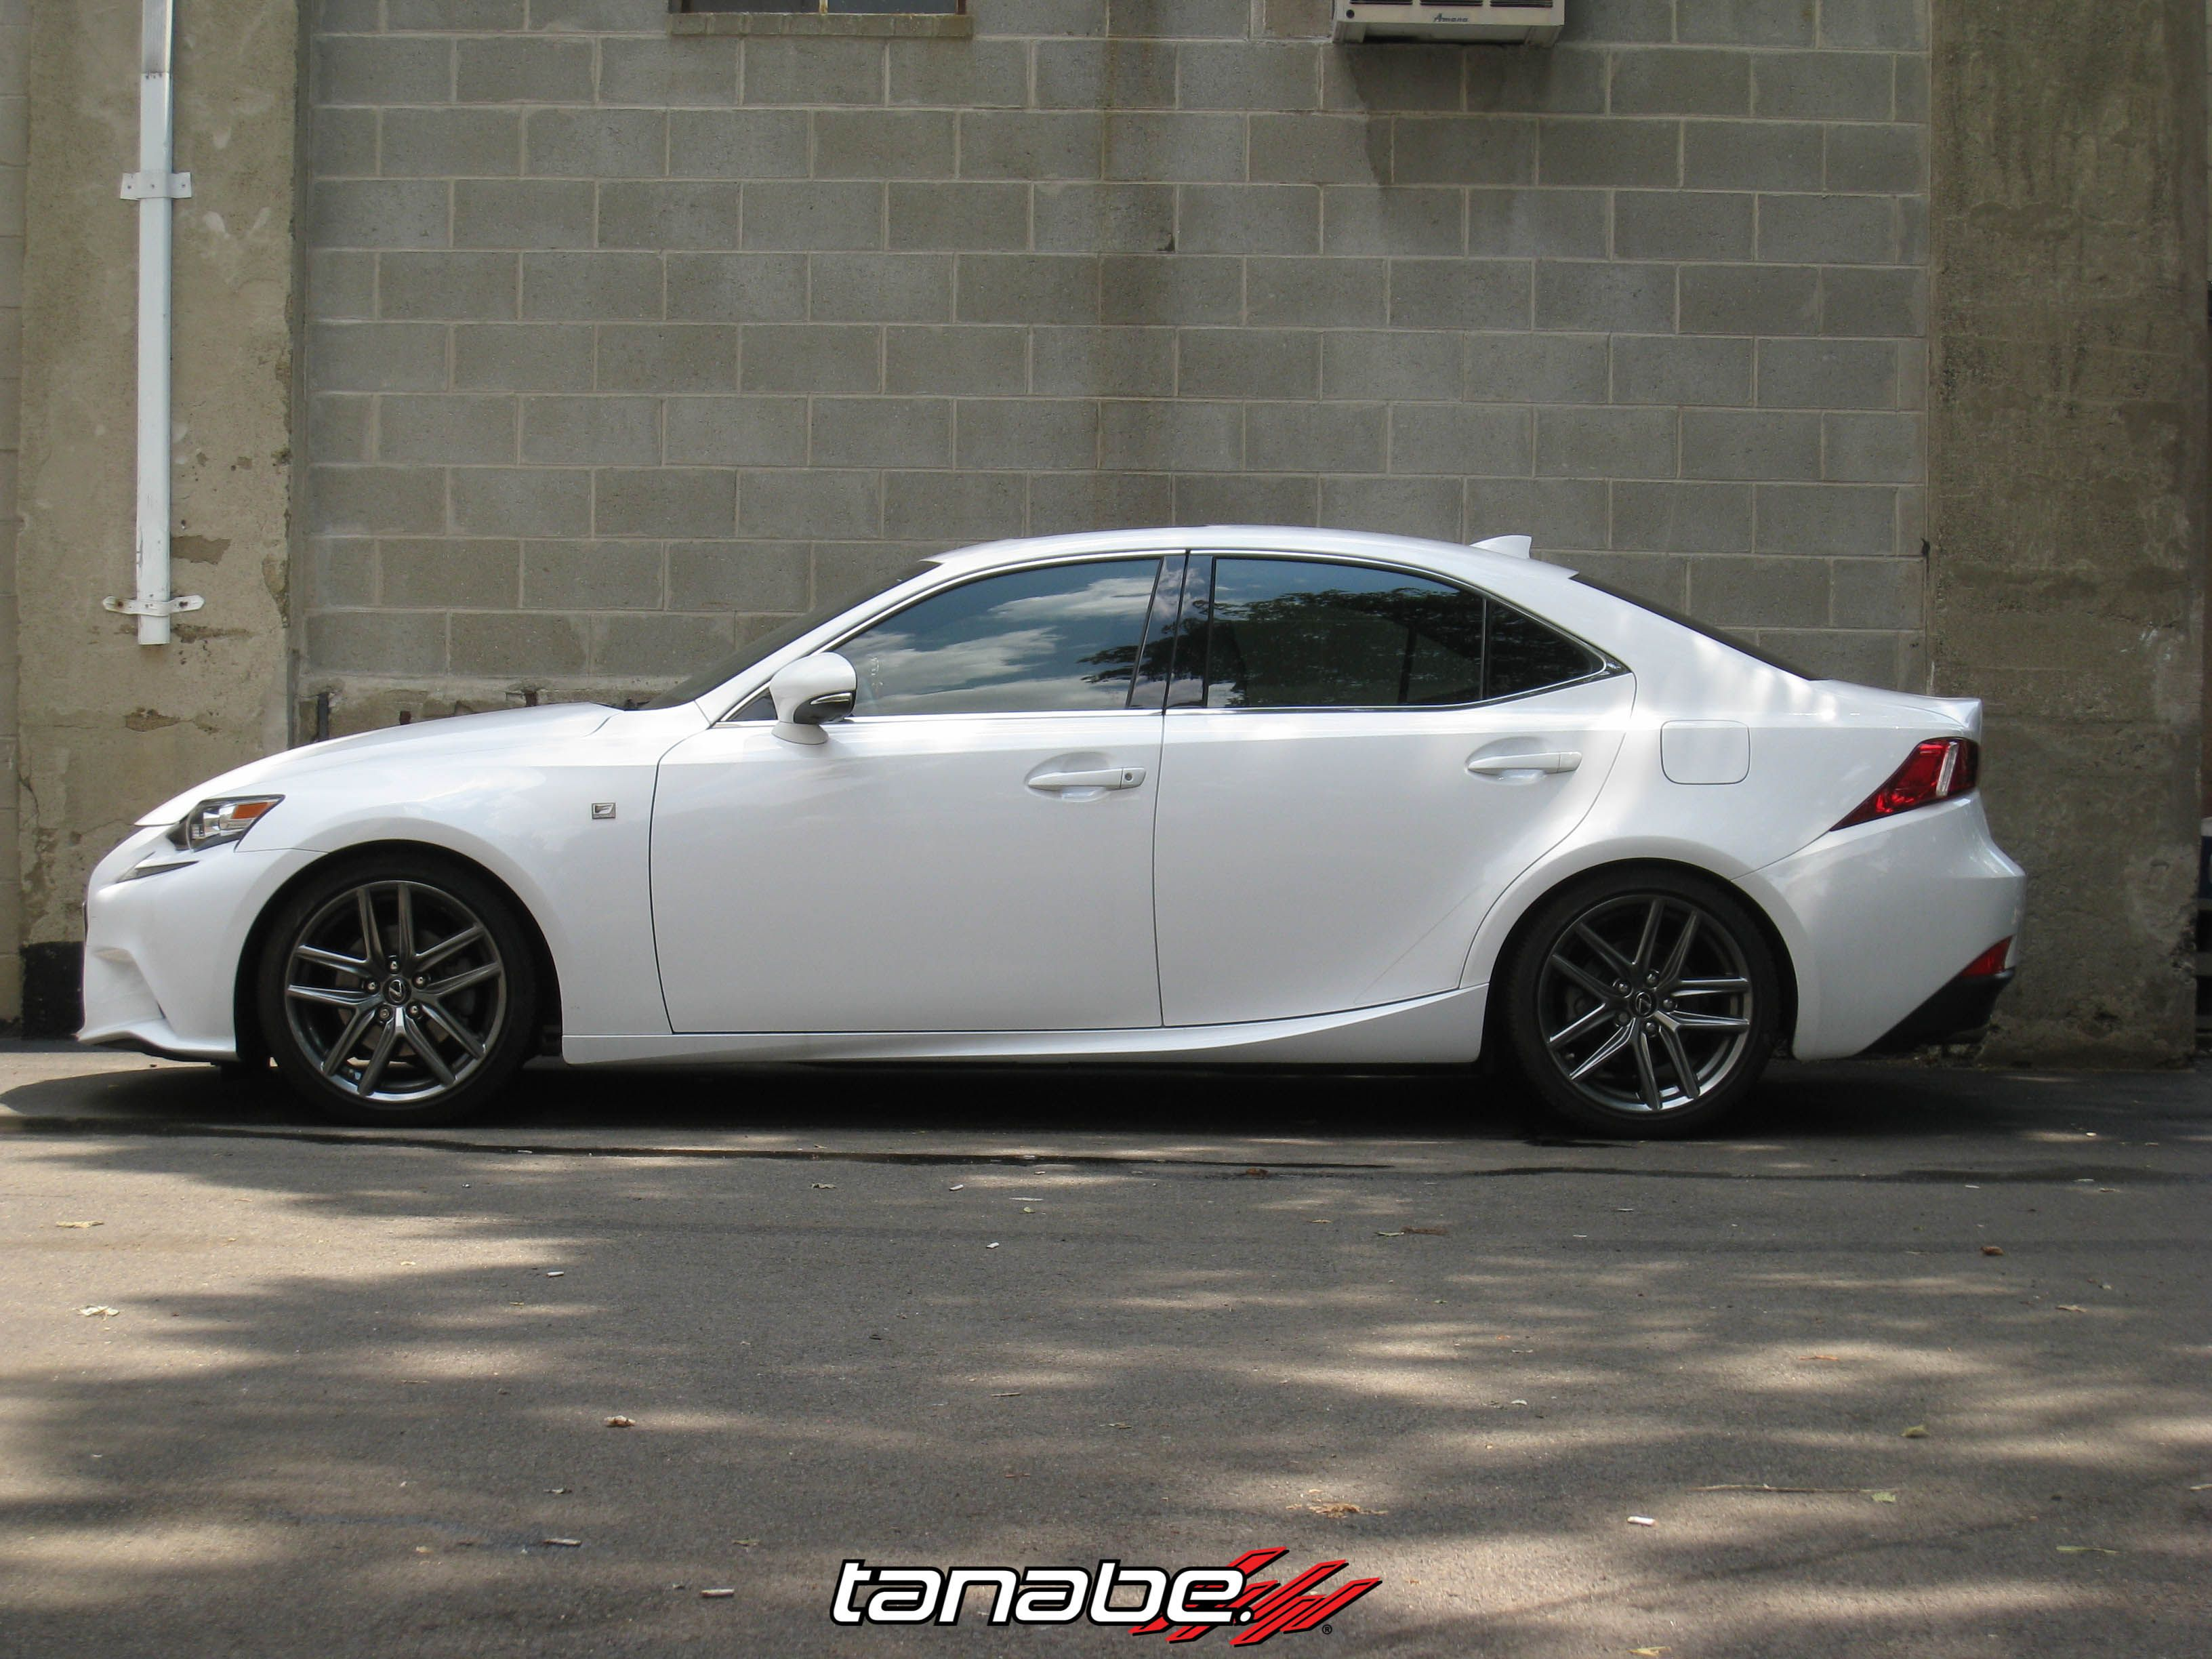 Attractive Pictured: 2014 Lexus IS250 F Sport AWD On NF210 Springs (PART# TNF177)